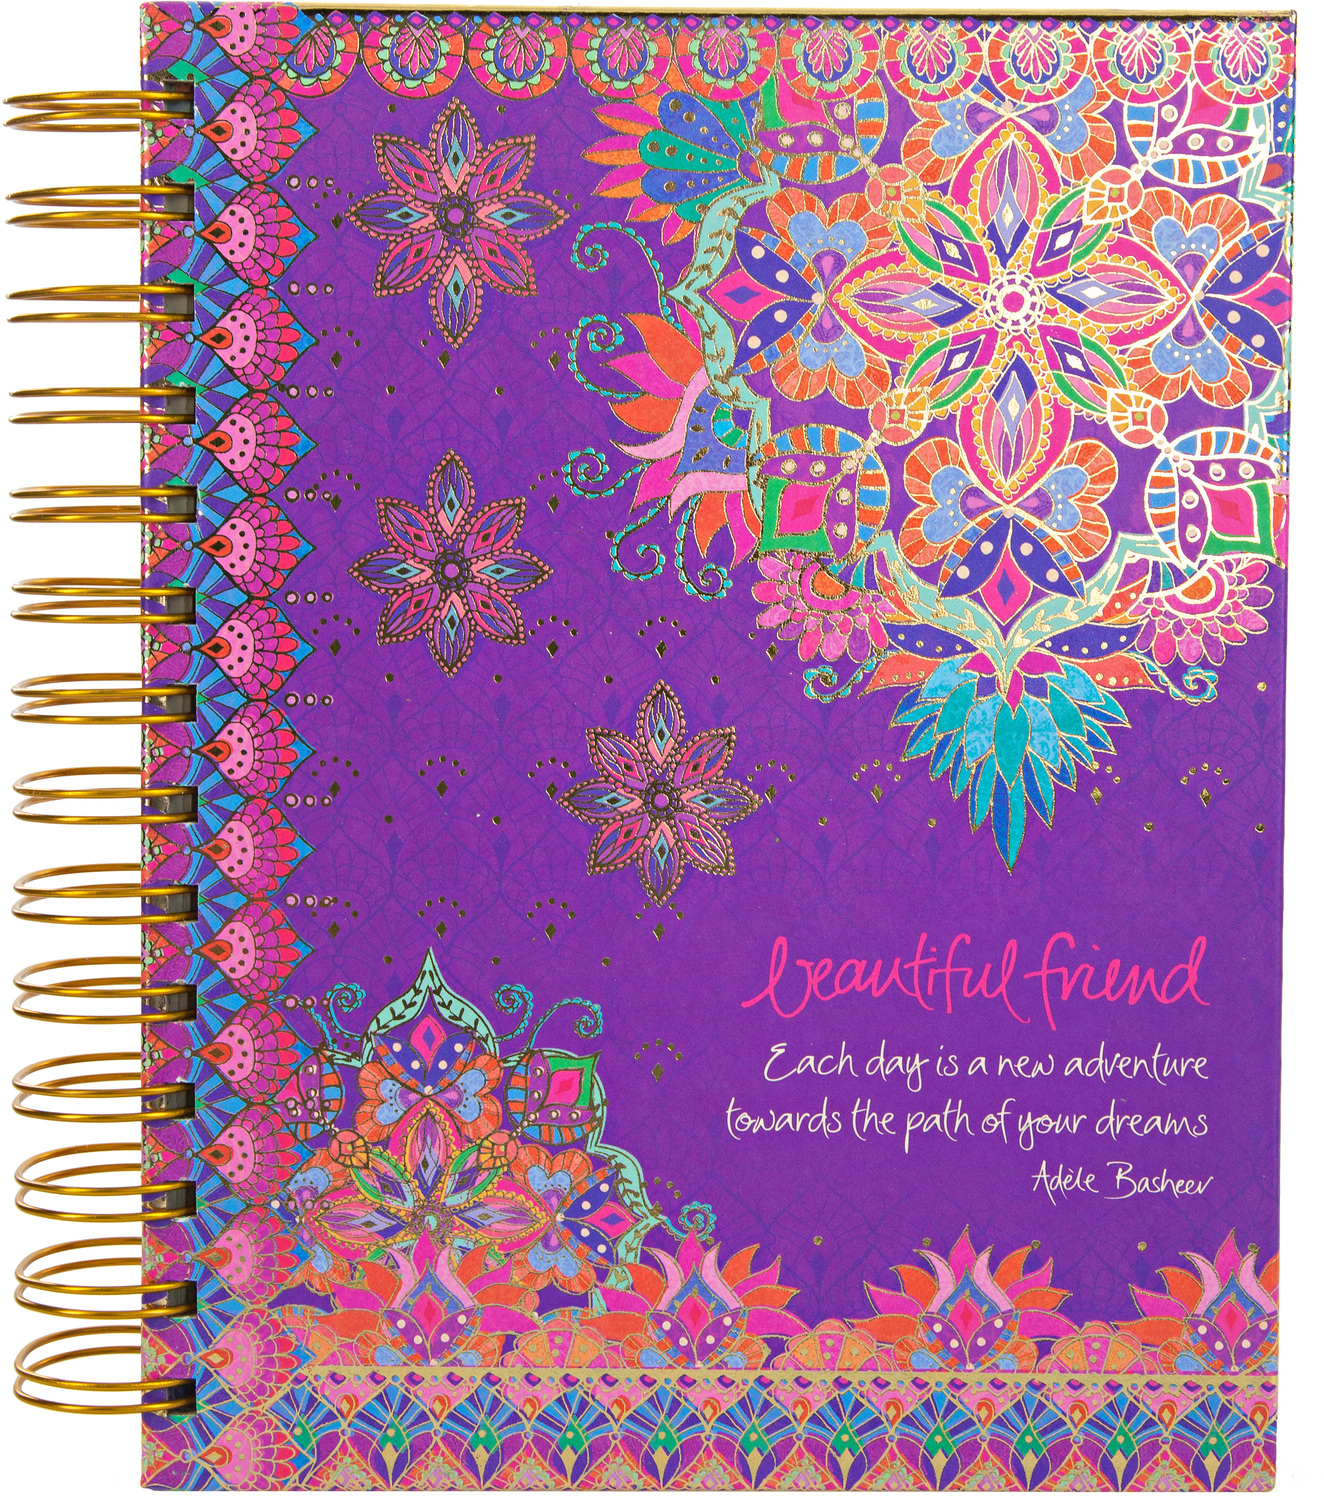 "Beautiful Friend by Intrinsic - Beautiful Friend - 7.5"" x 6.5"" Spiral Notebook"